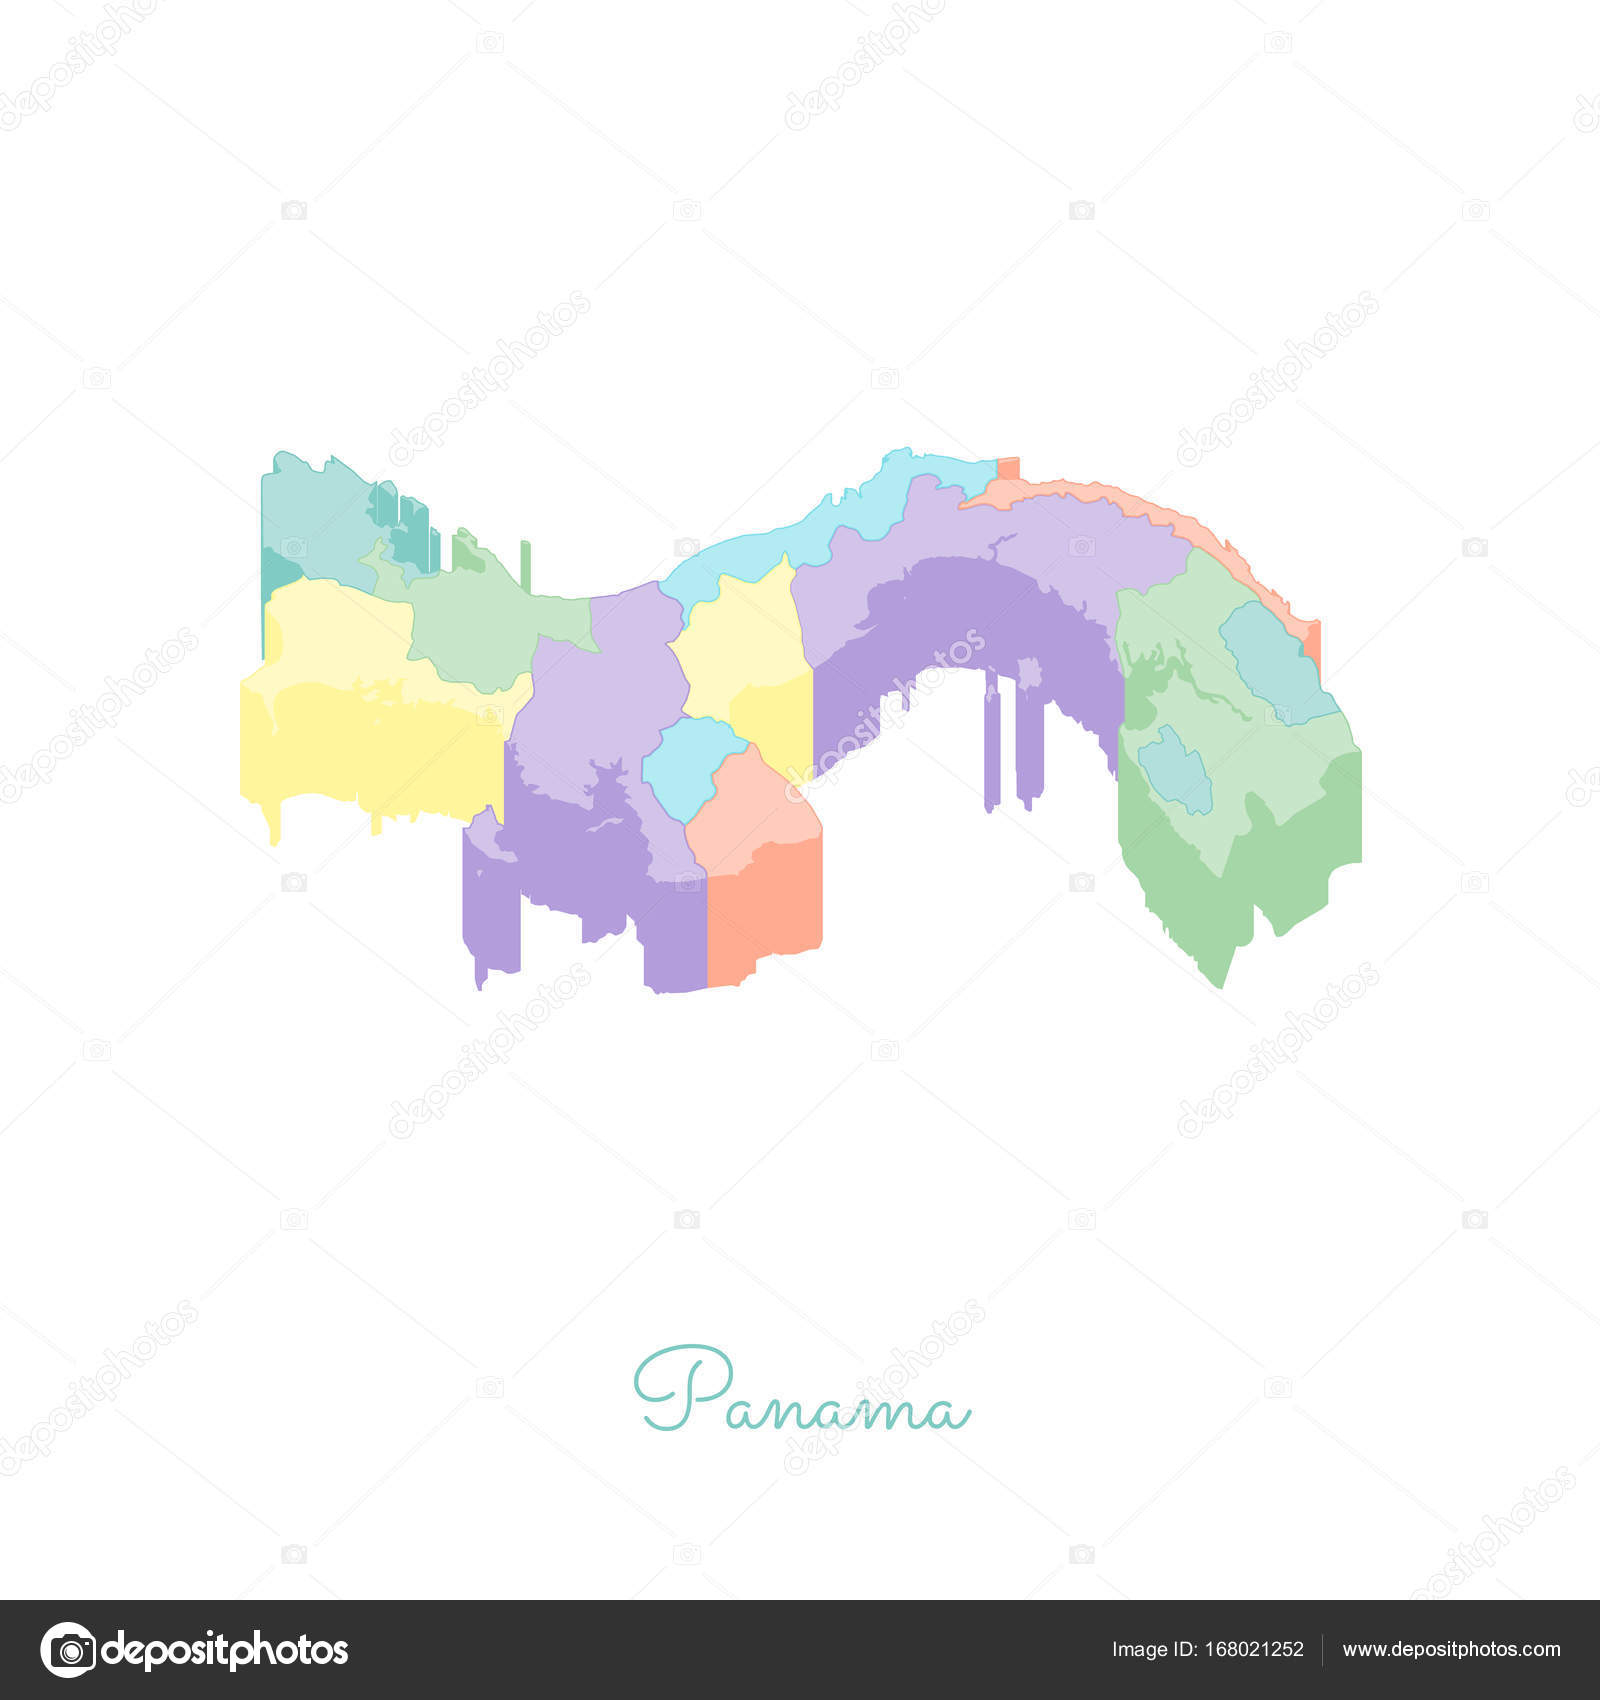 Panama Region Map Colorful Isometric Top View Detailed Map Of - Panama map vector